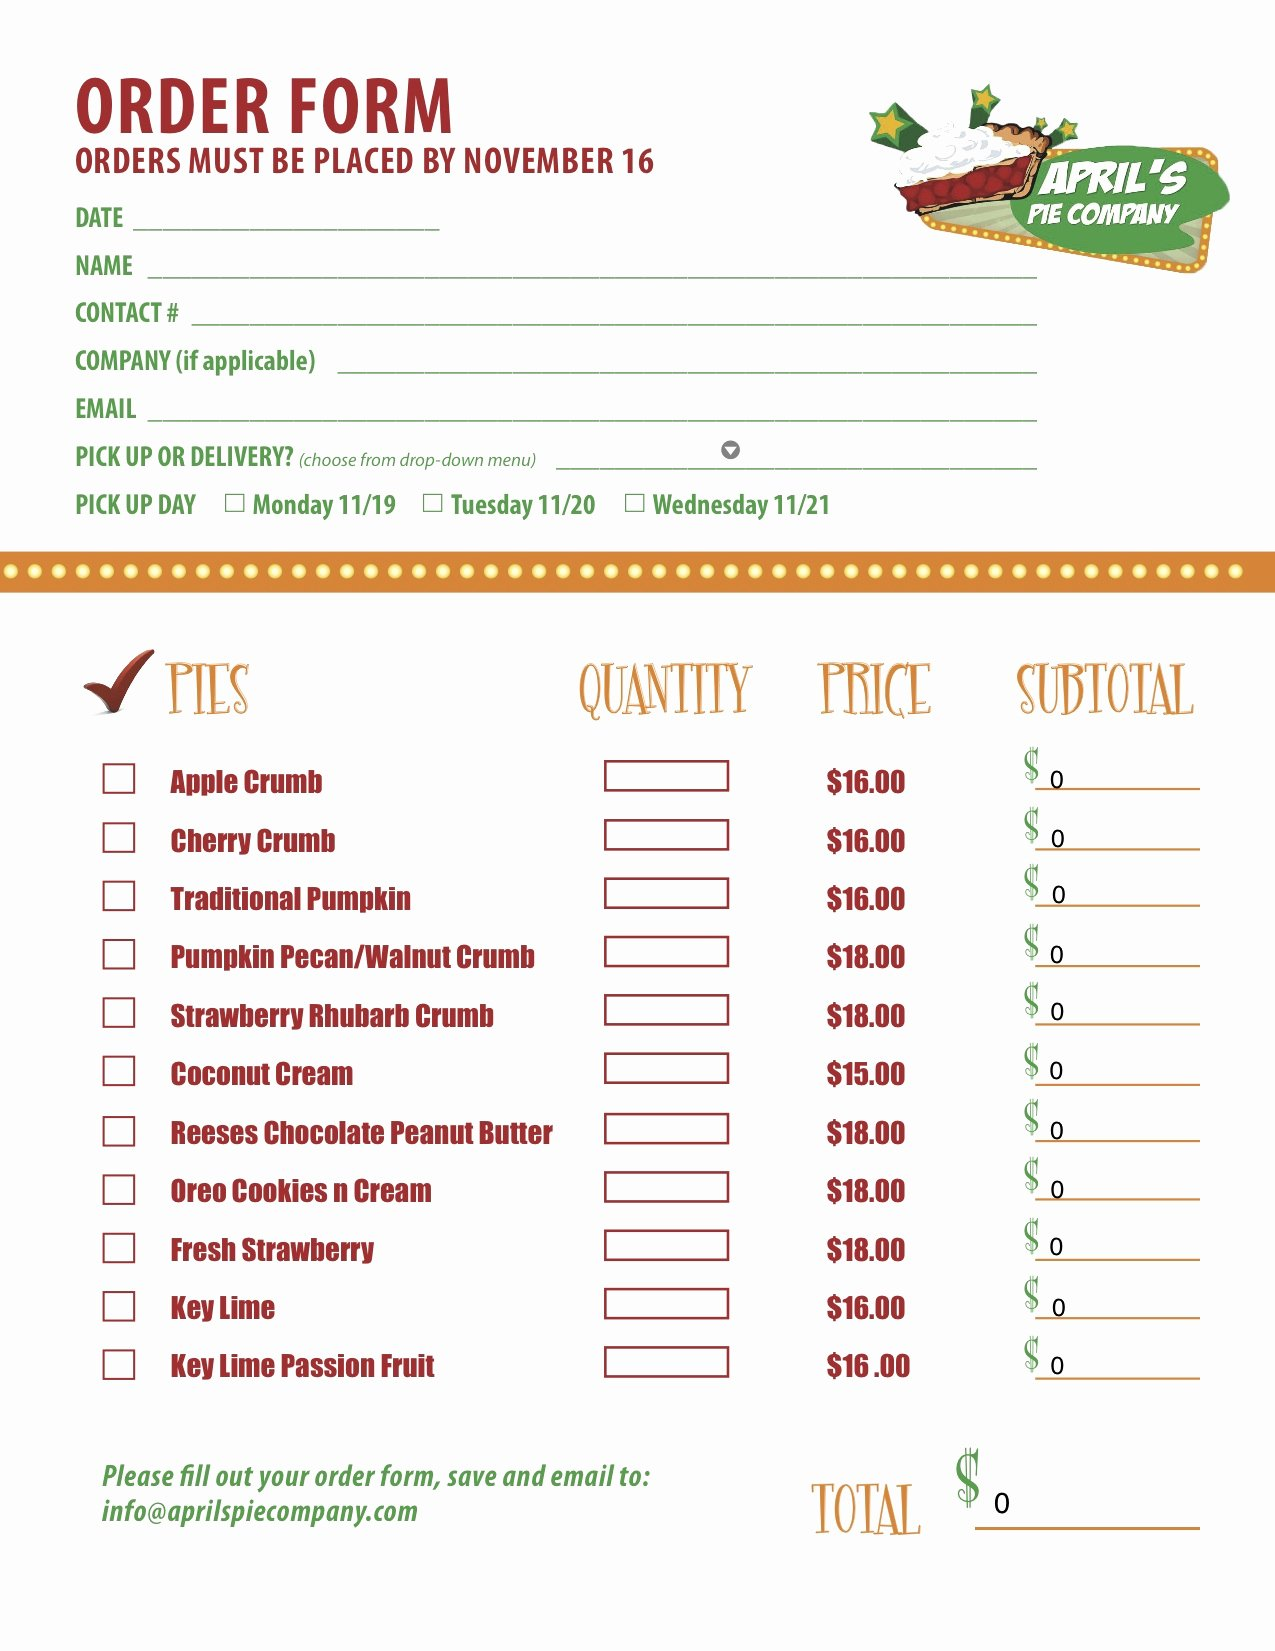 Bakery order form Template Free Luxury Delicious Media for April's Pie Pany